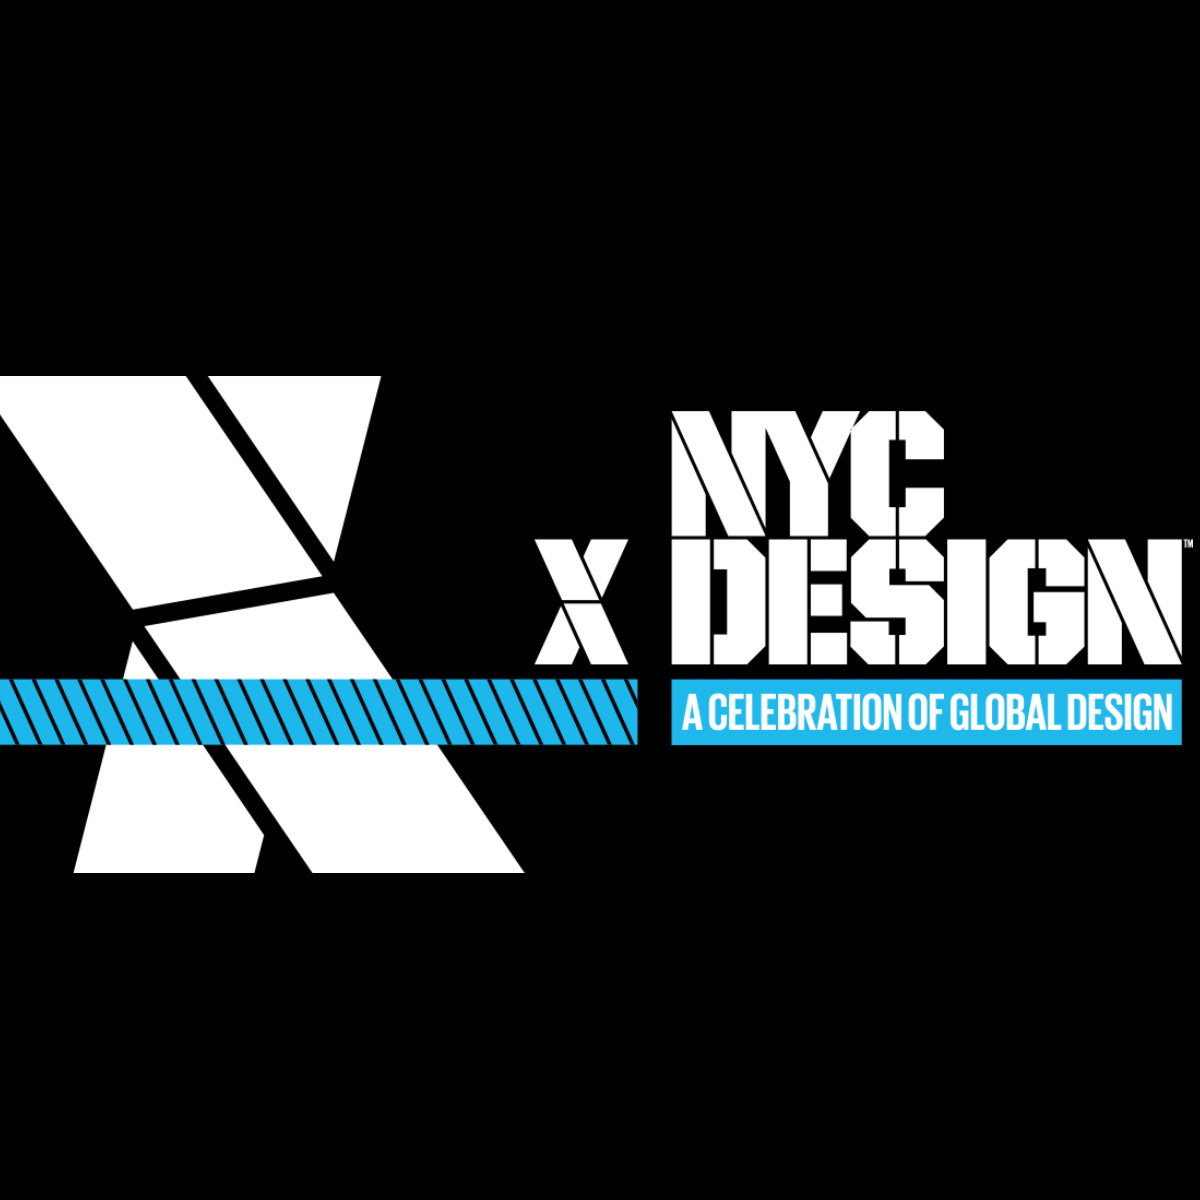 NYCxDESIGN 2017